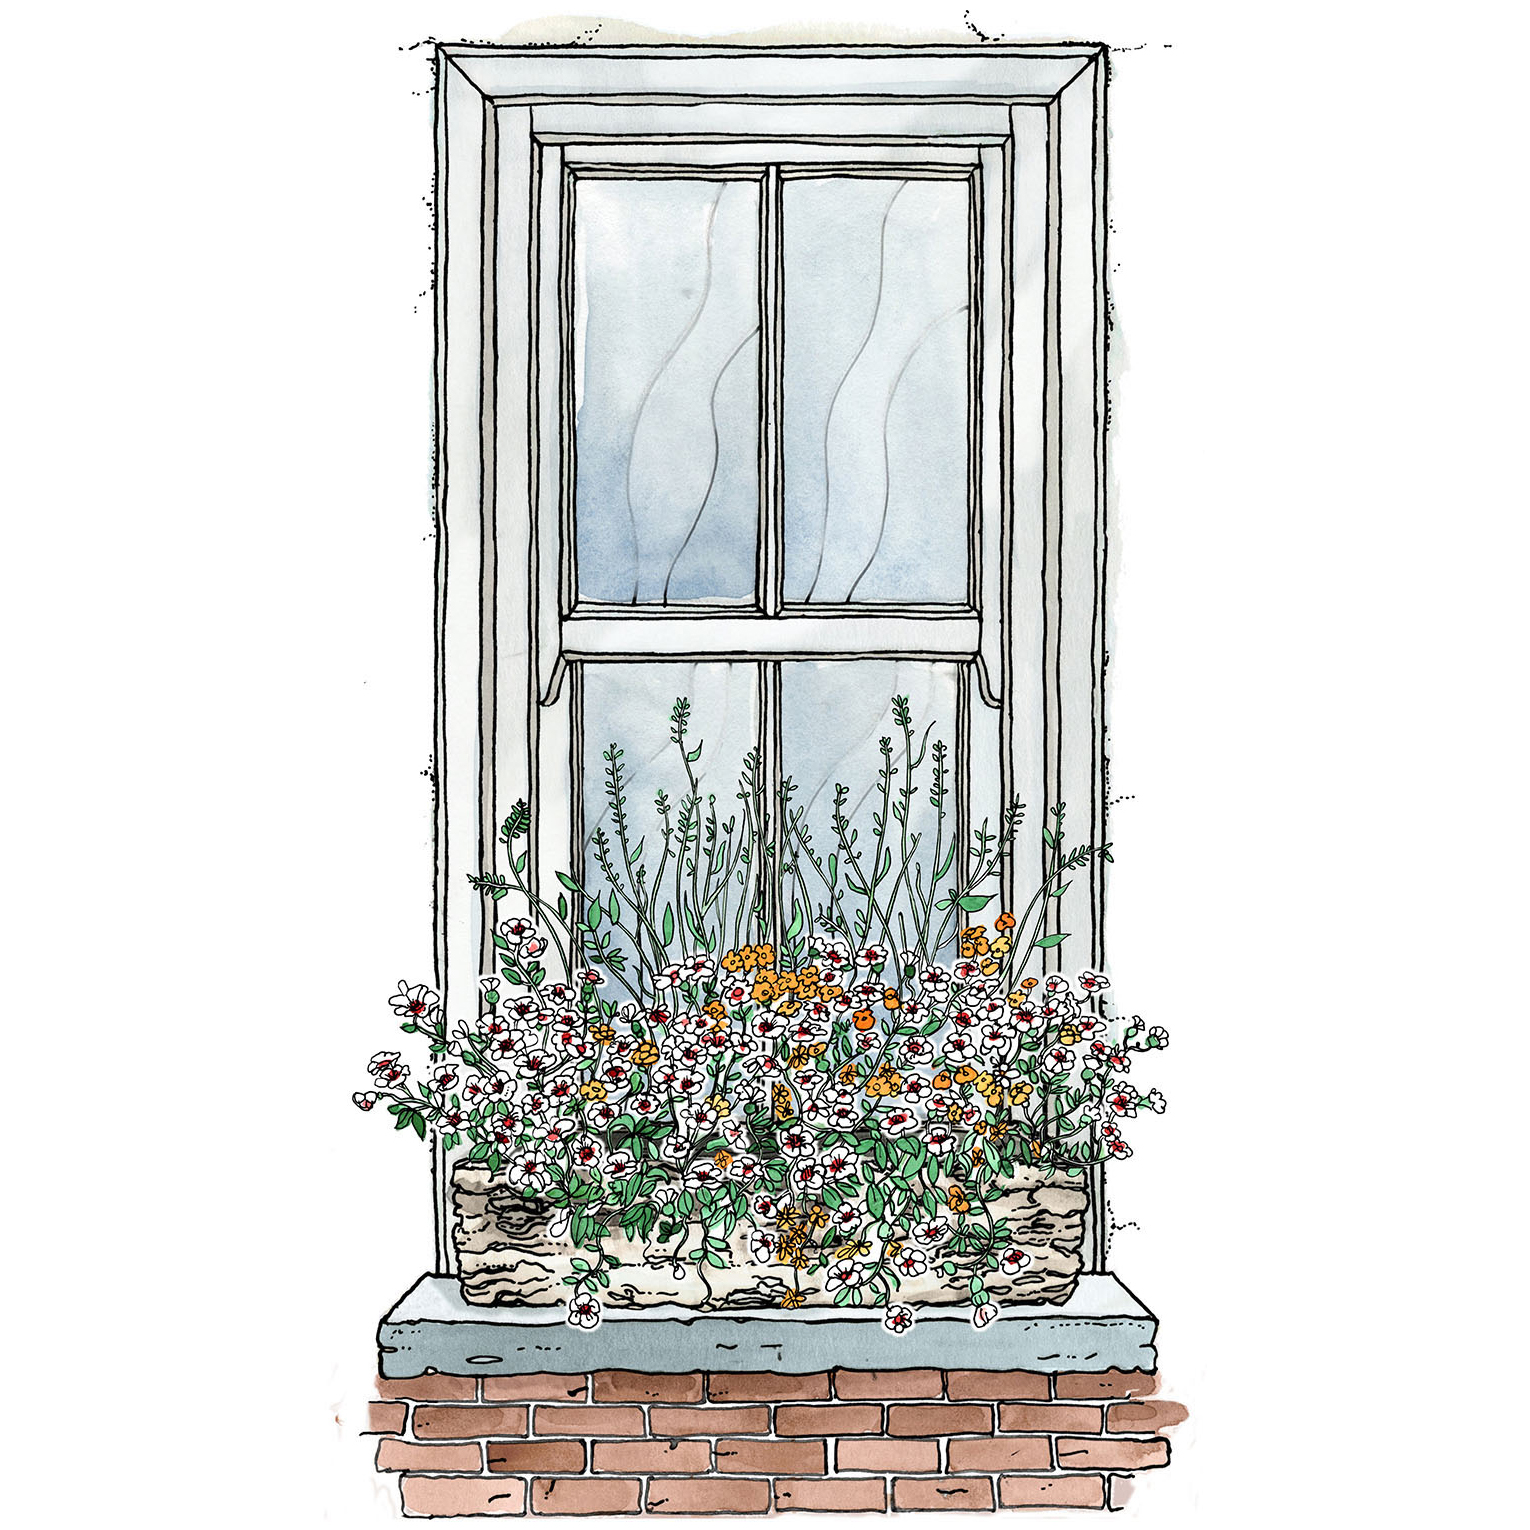 illustration of a window box filled with flowers